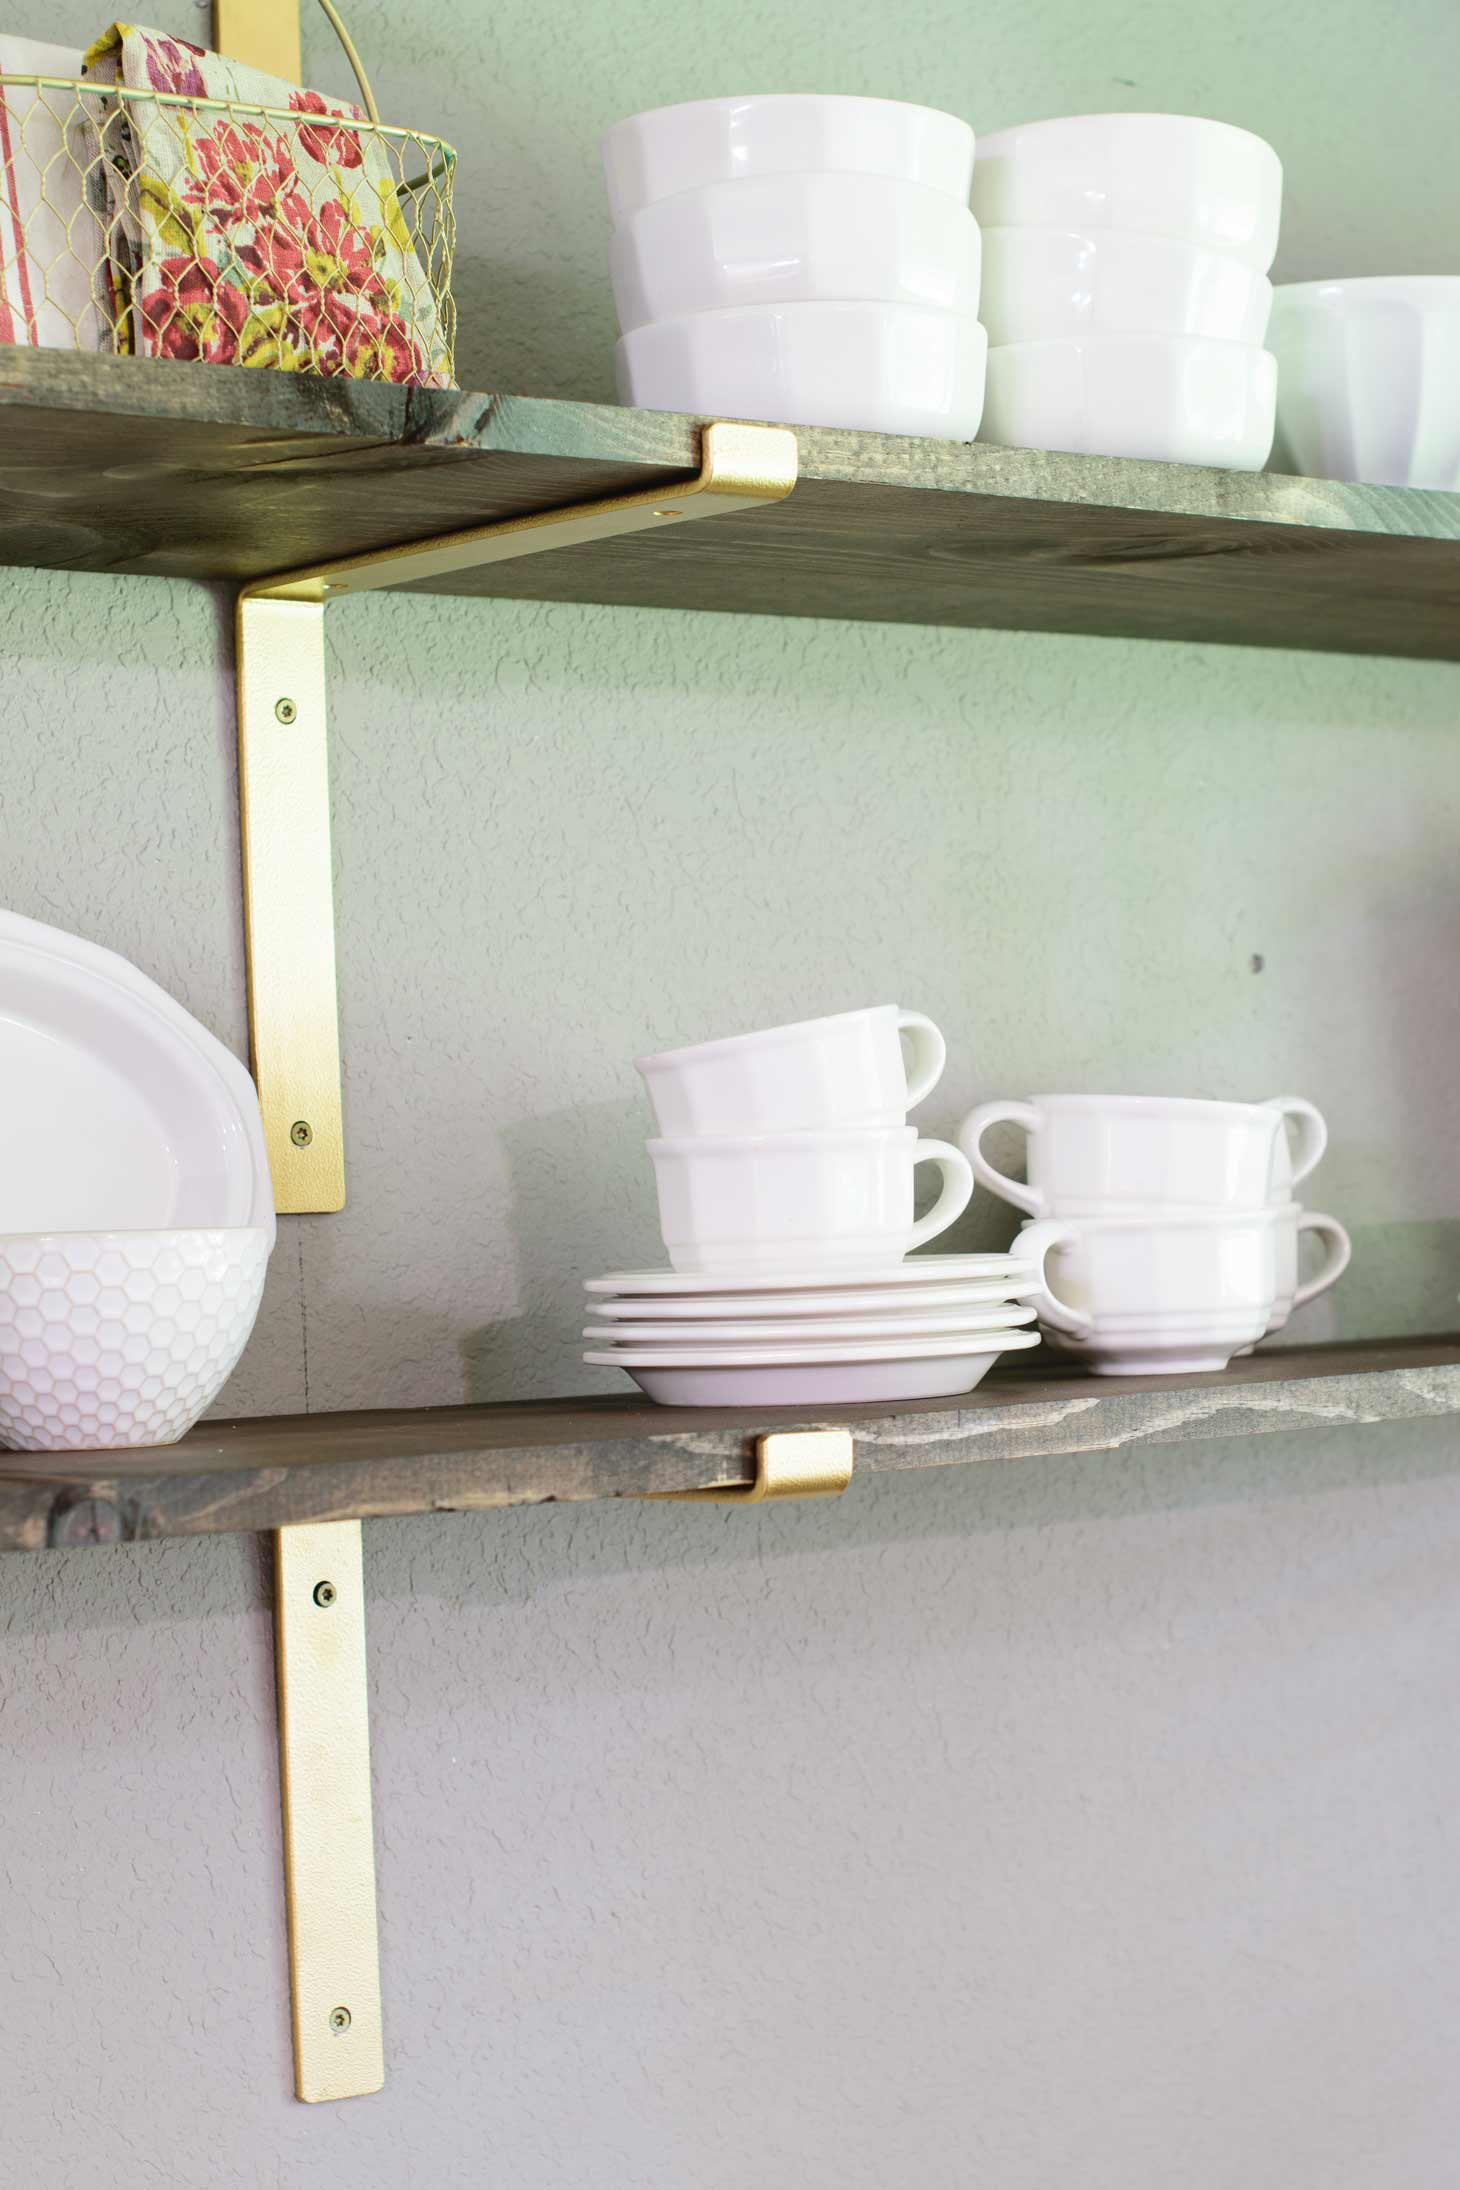 white teacups and bowls on wood shelves with gold brackets